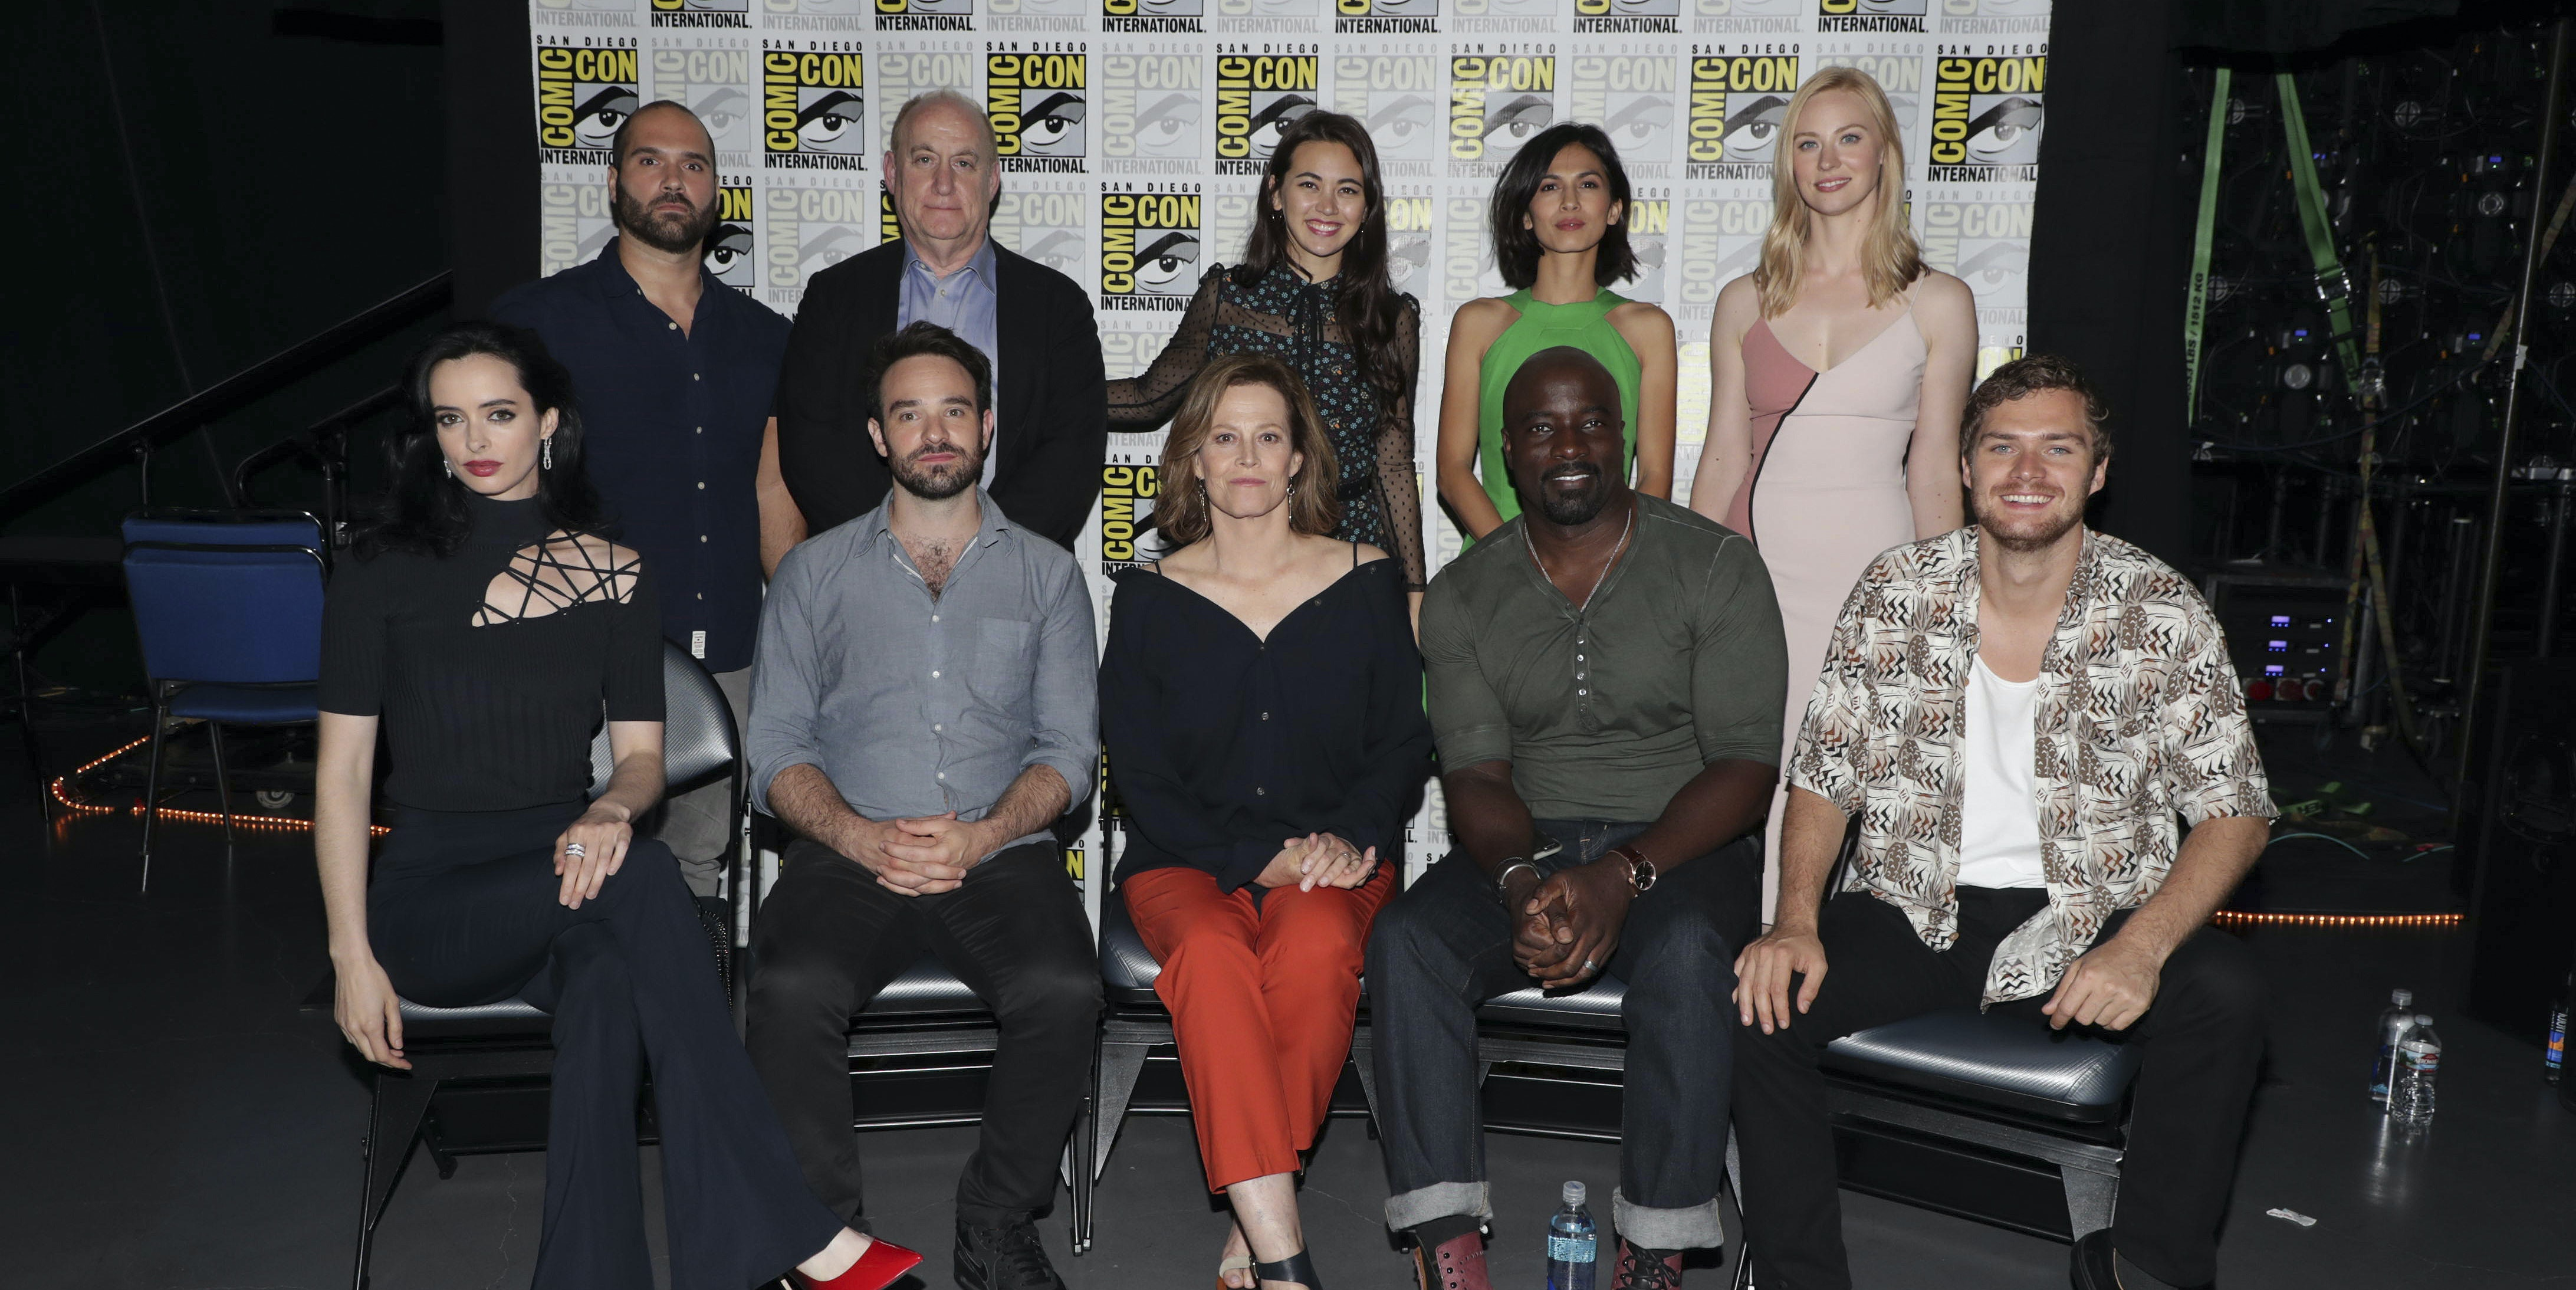 The cast of Marvel's 'The Defenders' at San Diego Comic-Con 2017.